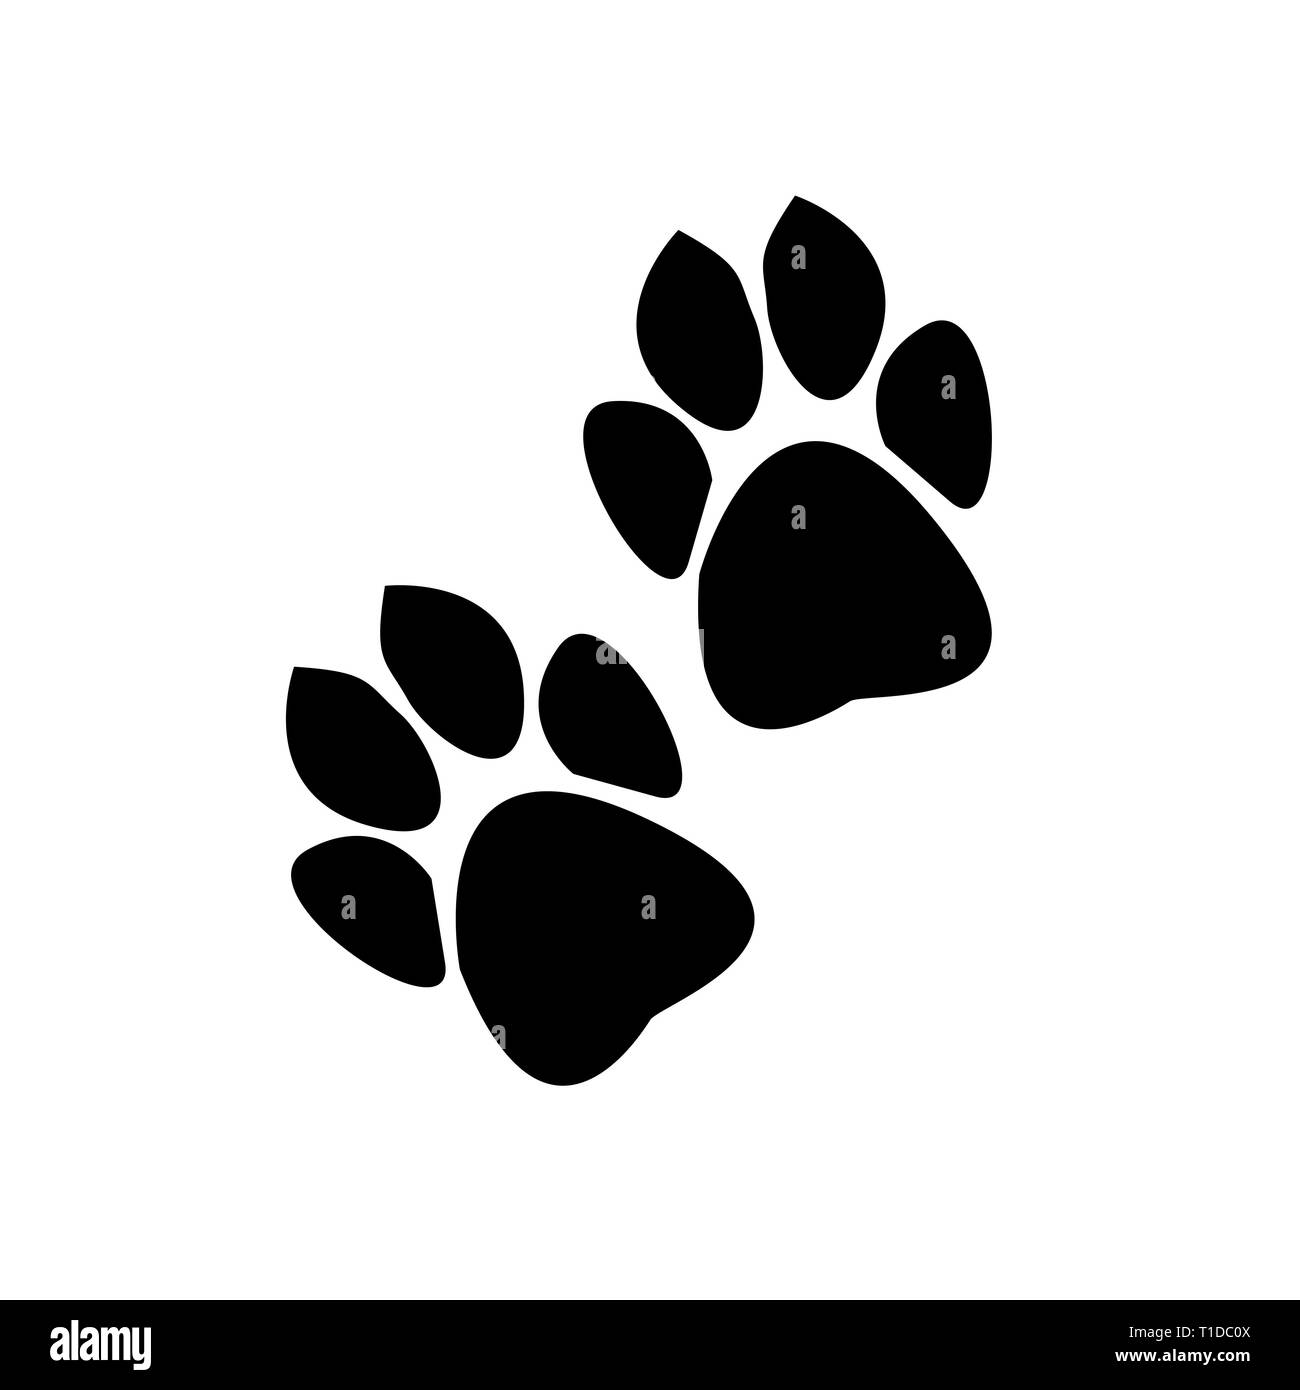 traces of animals on a white background - Stock Vector